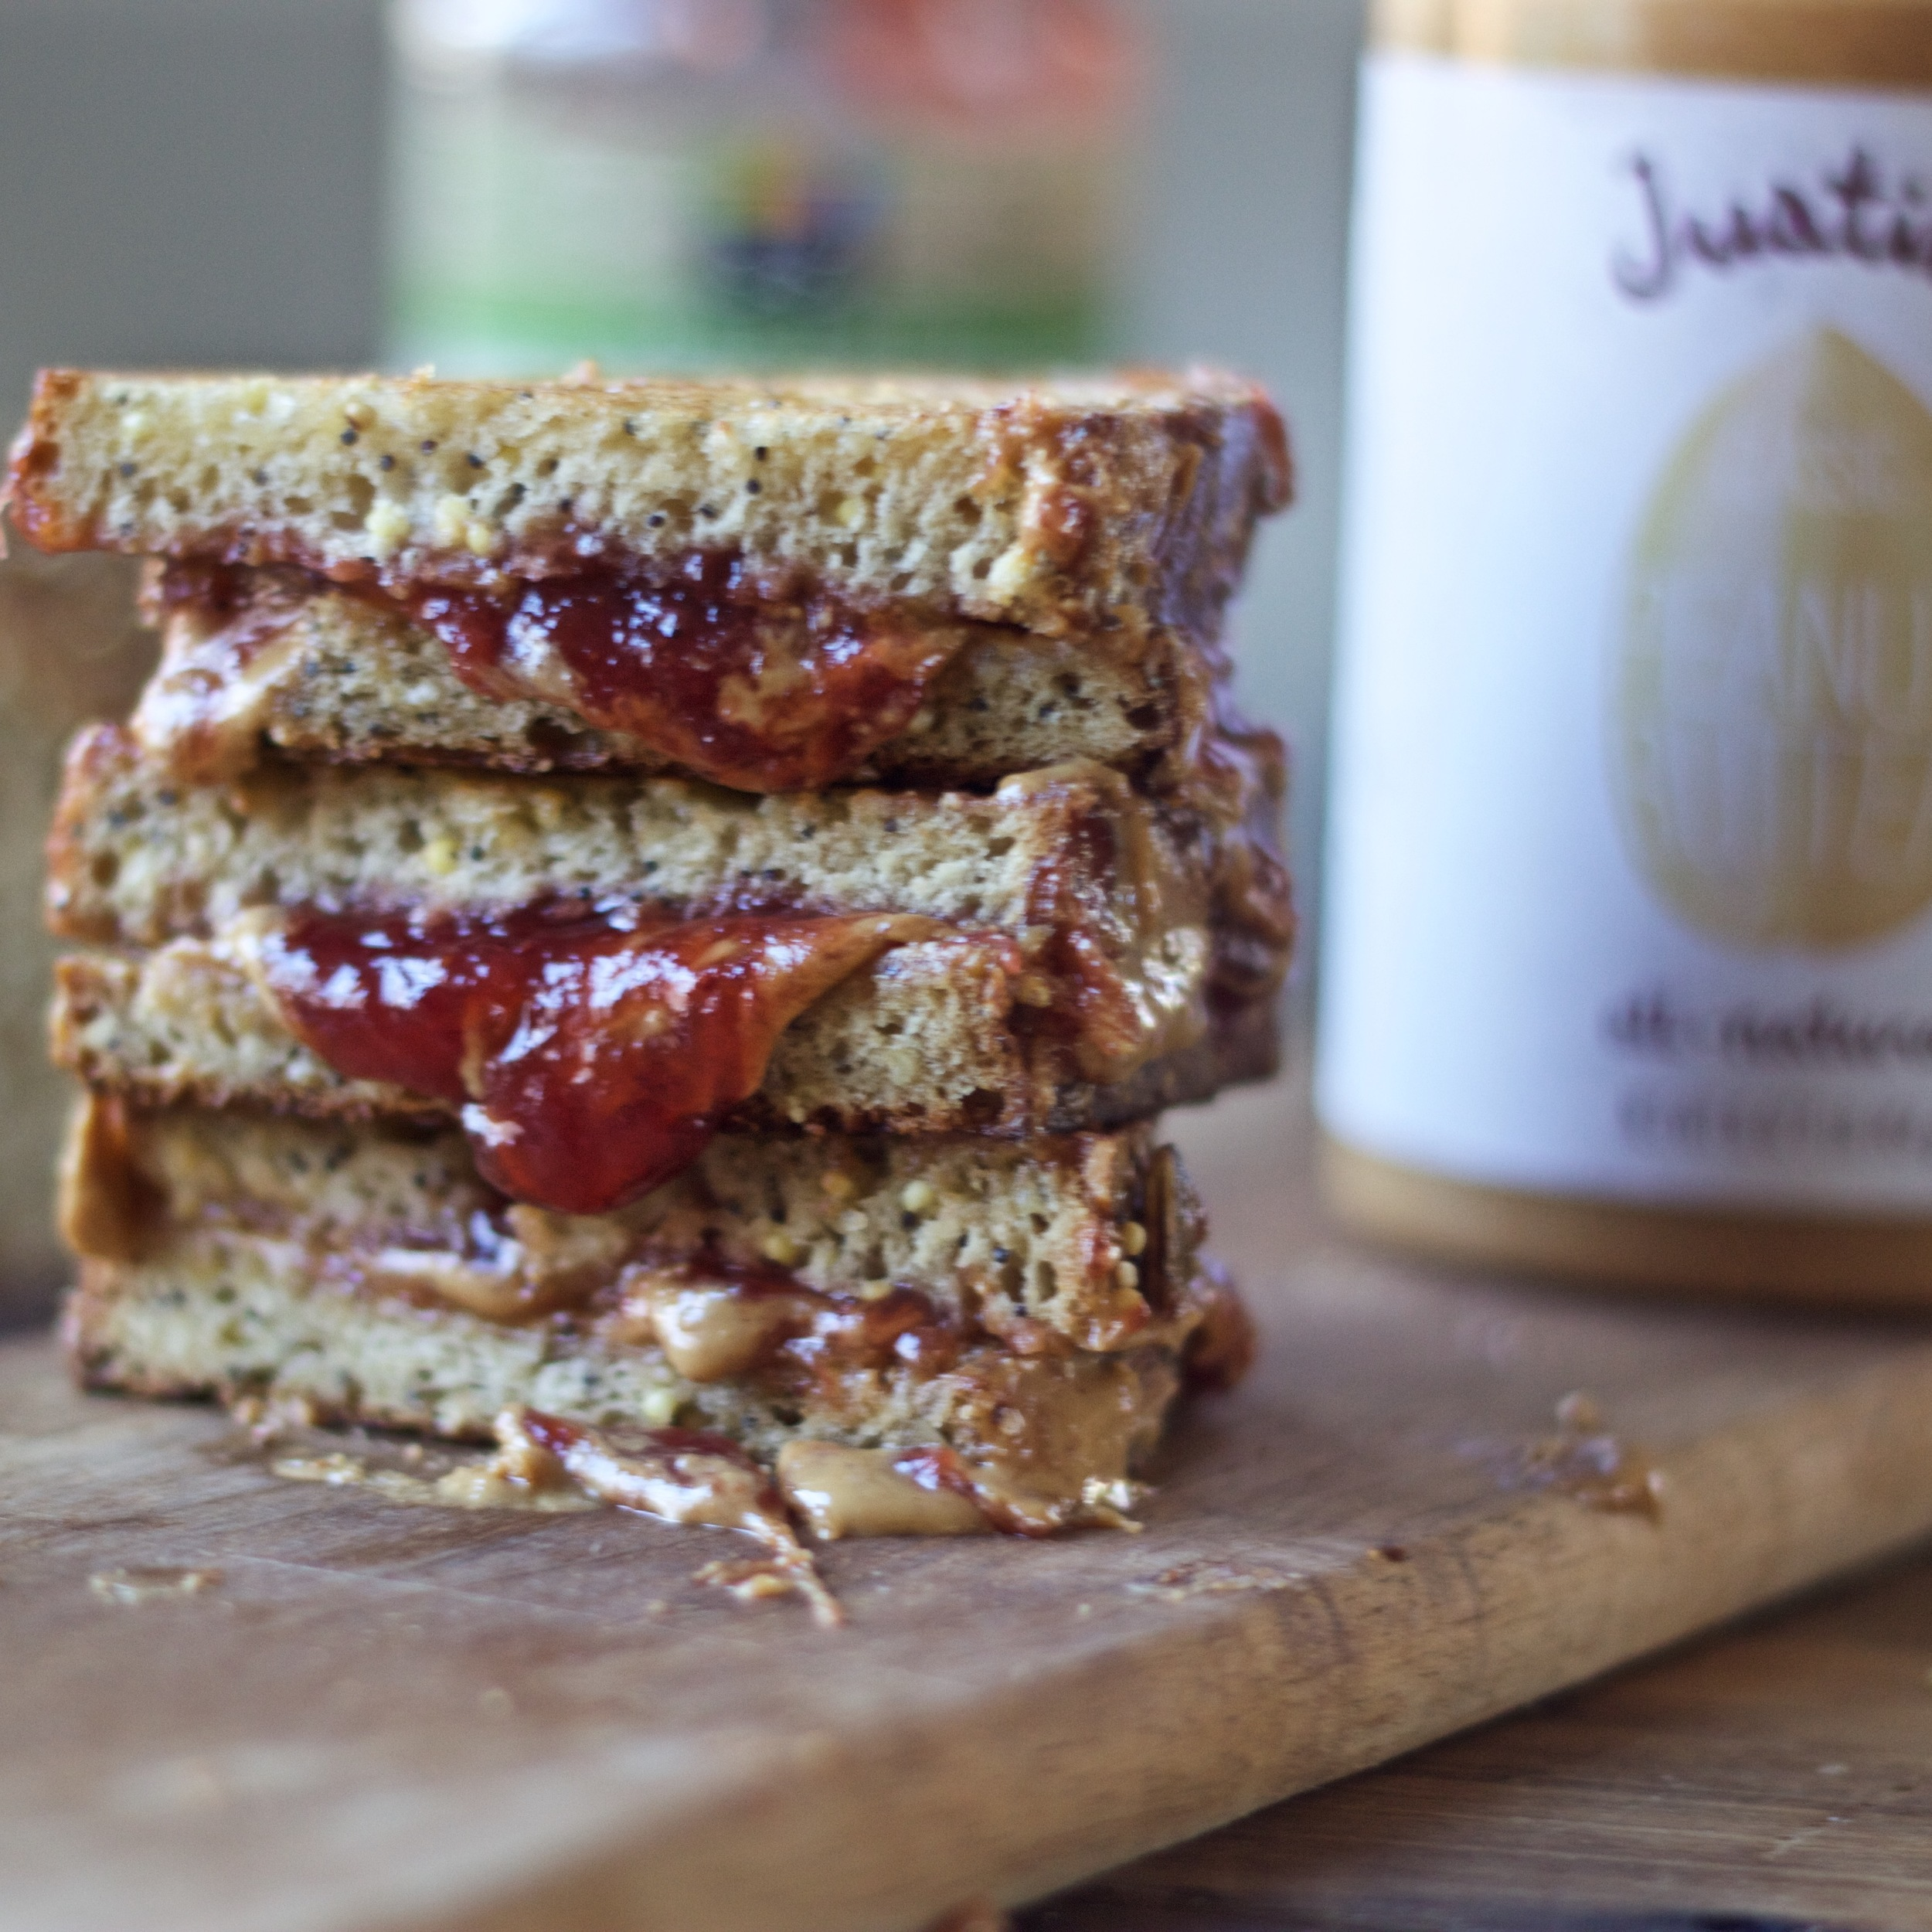 Griddled Peanut Butter and Jelly Sandwich